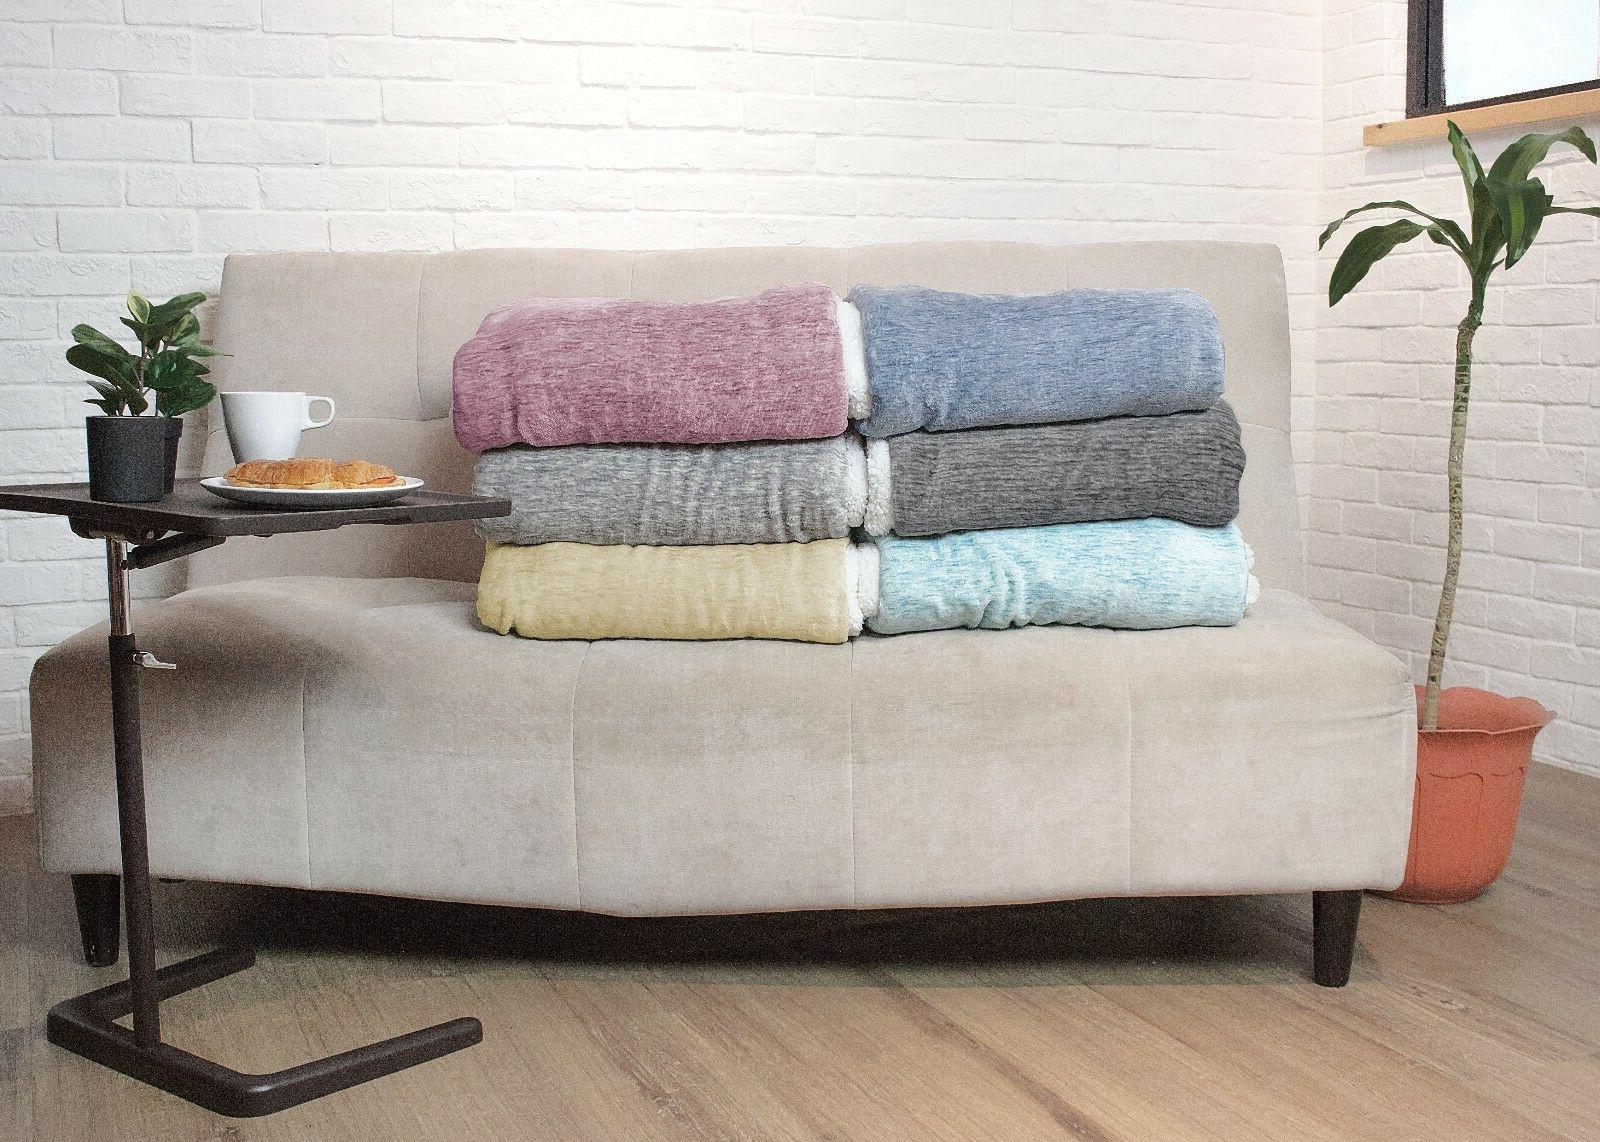 Sherpa Couch Sofa Twin Bed Reversible Soft Fleece